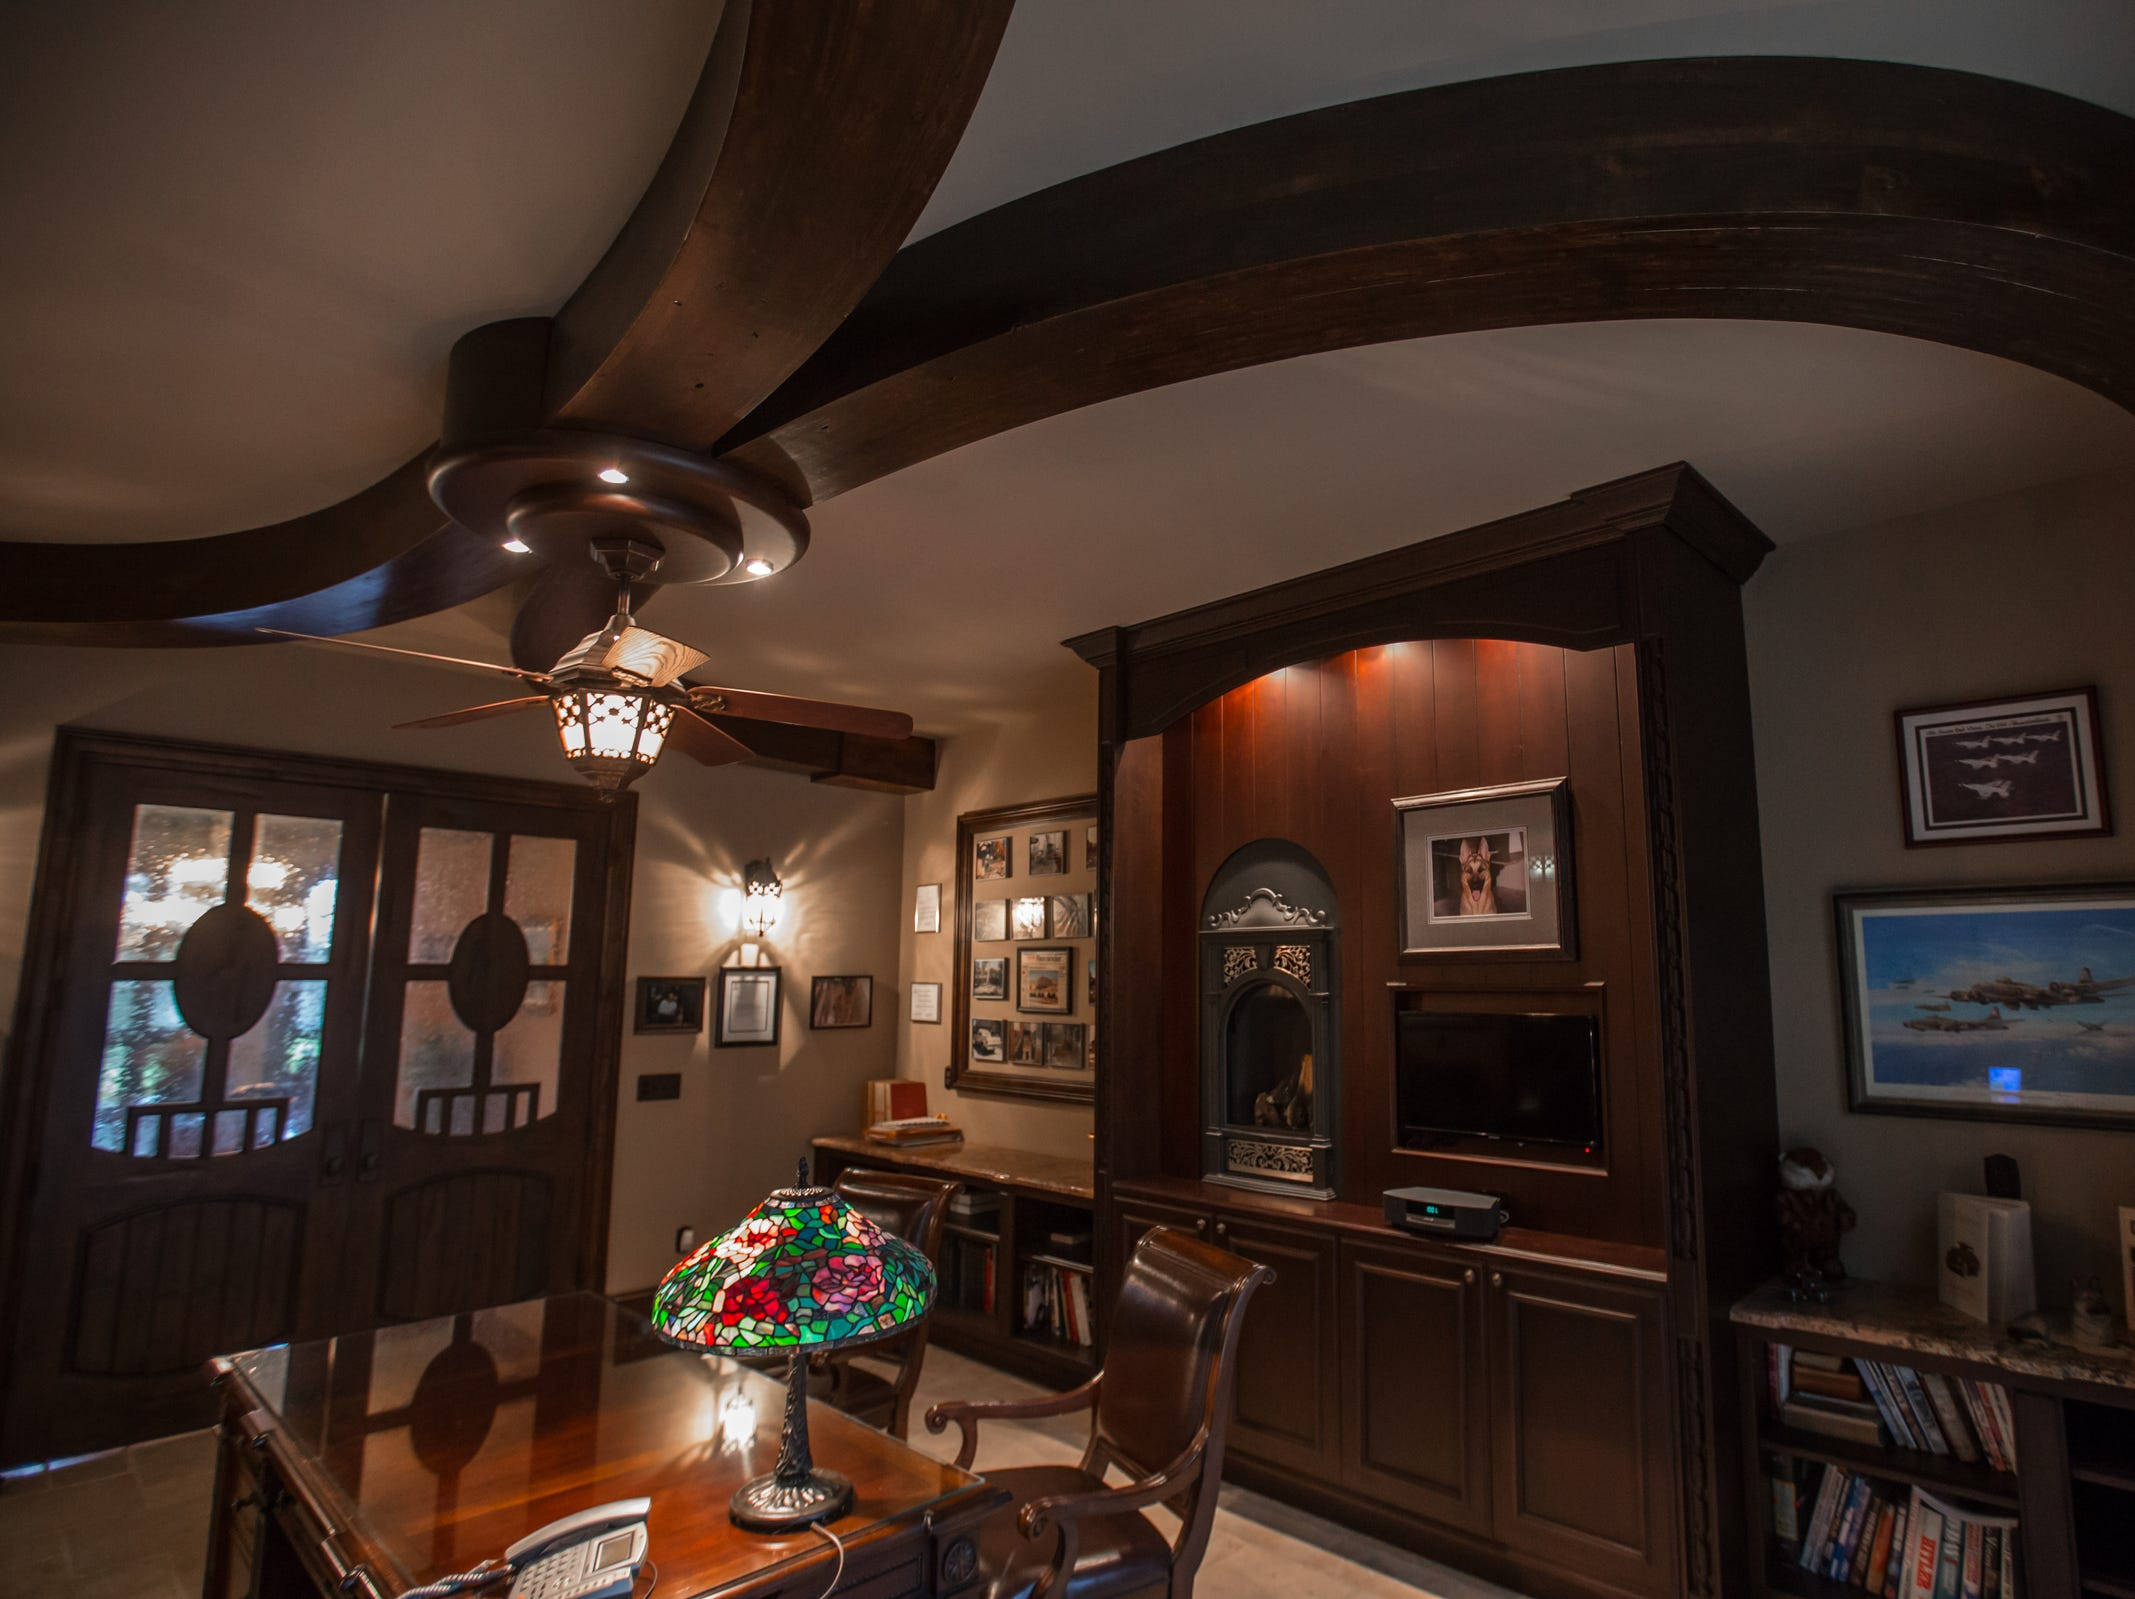 Custom doors and a unique library ceiling with radius curved beam work and custom formed lighting pendant are seen in the home envisioned after the Biltmore Estate designed by Alex Bogarts and built by an award winning builder as his own personal residence.